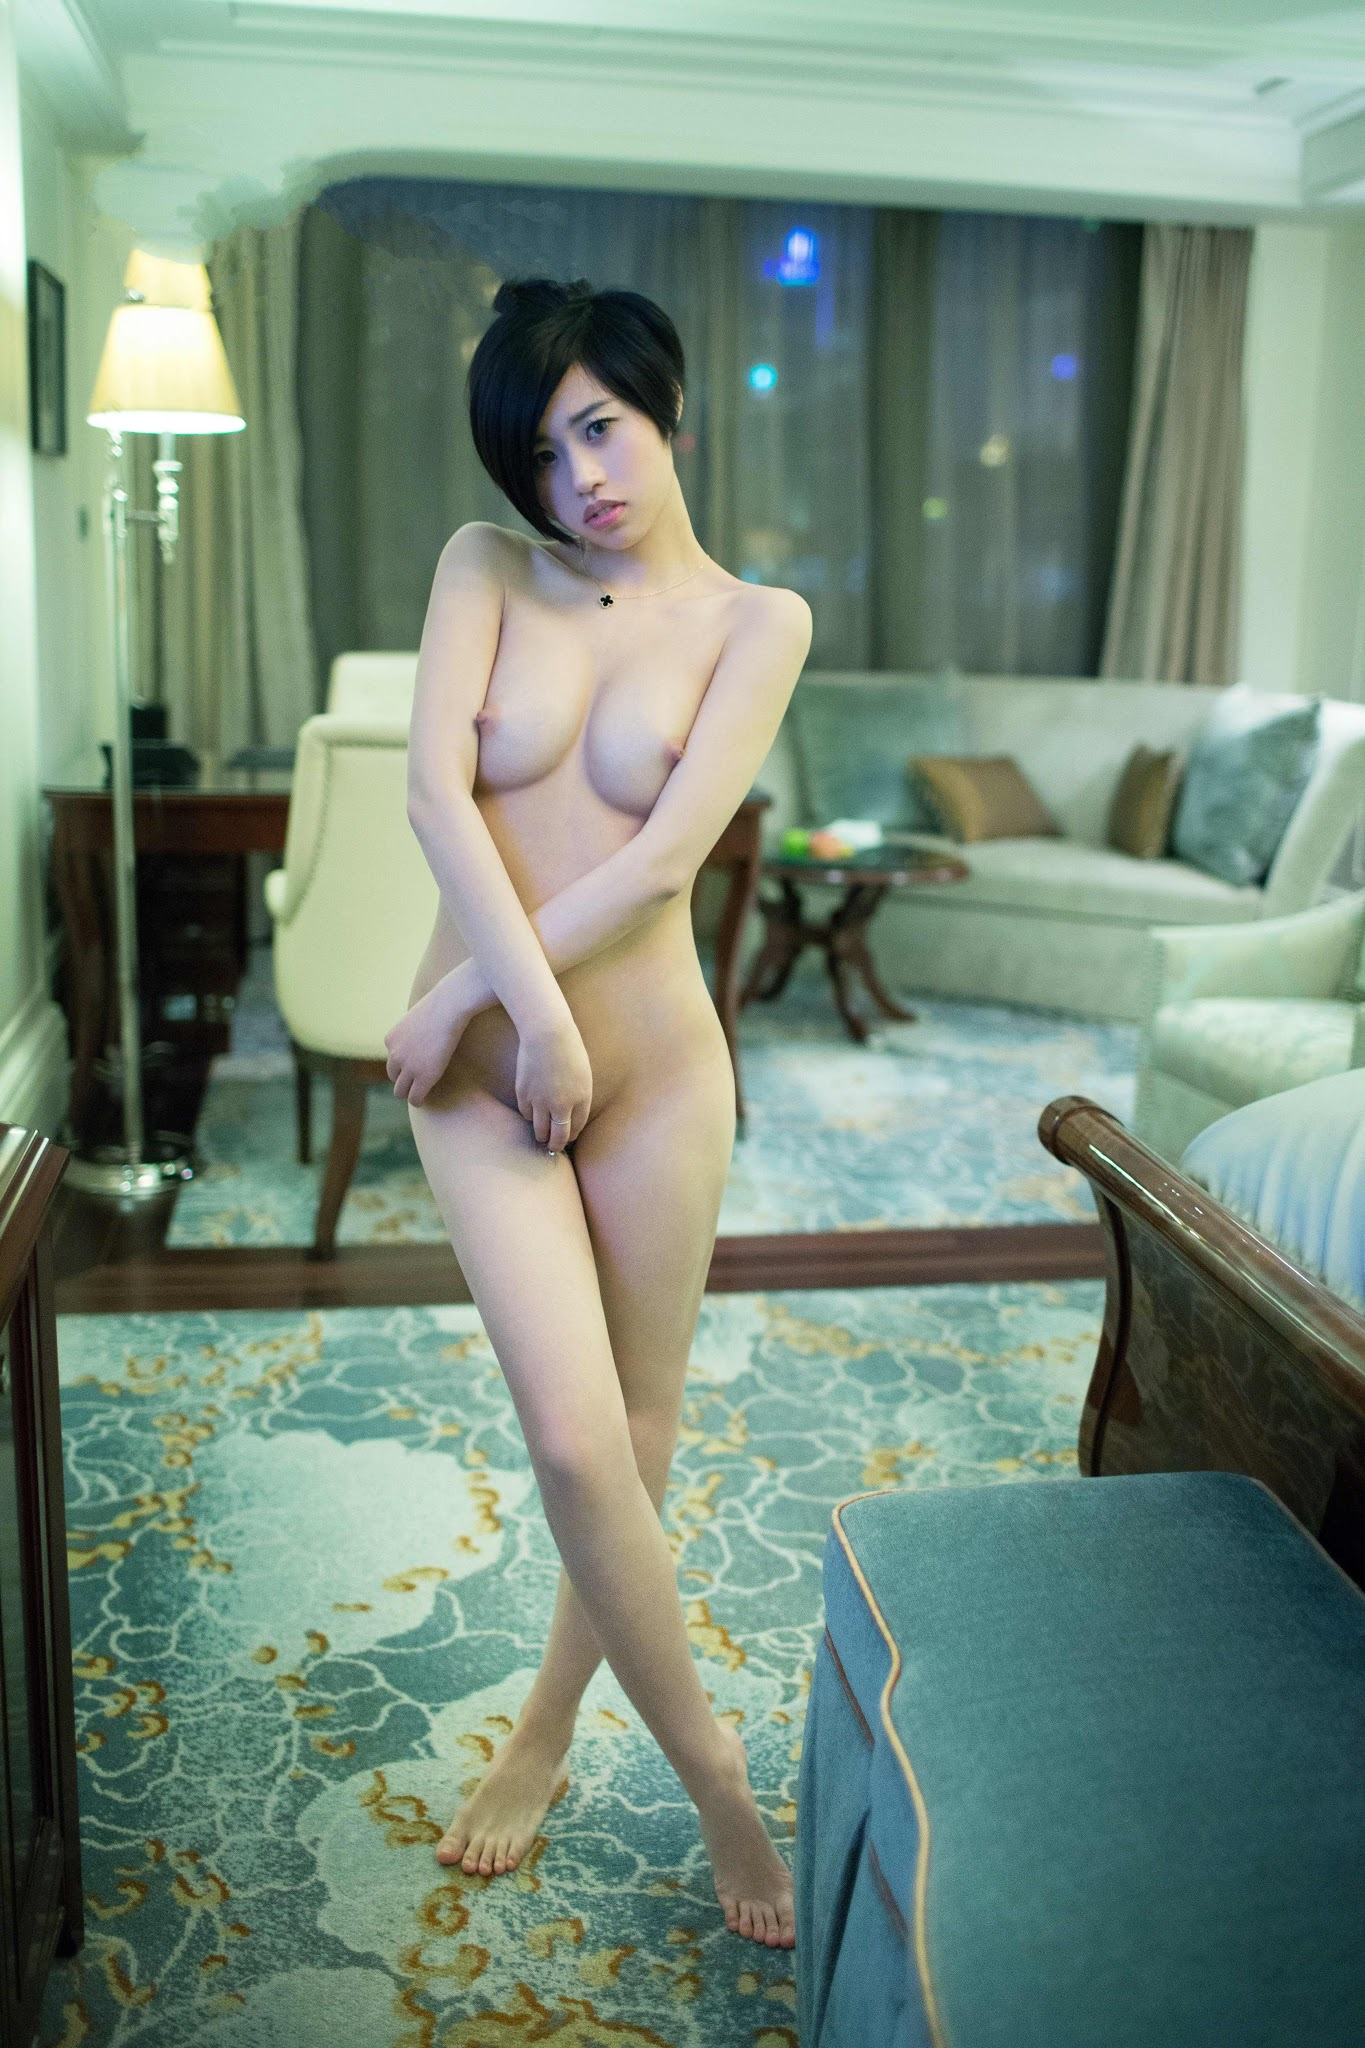 Lina Nude Chinese Girl Uncensored uHD 推女郎 TuiGirl No.059 ...